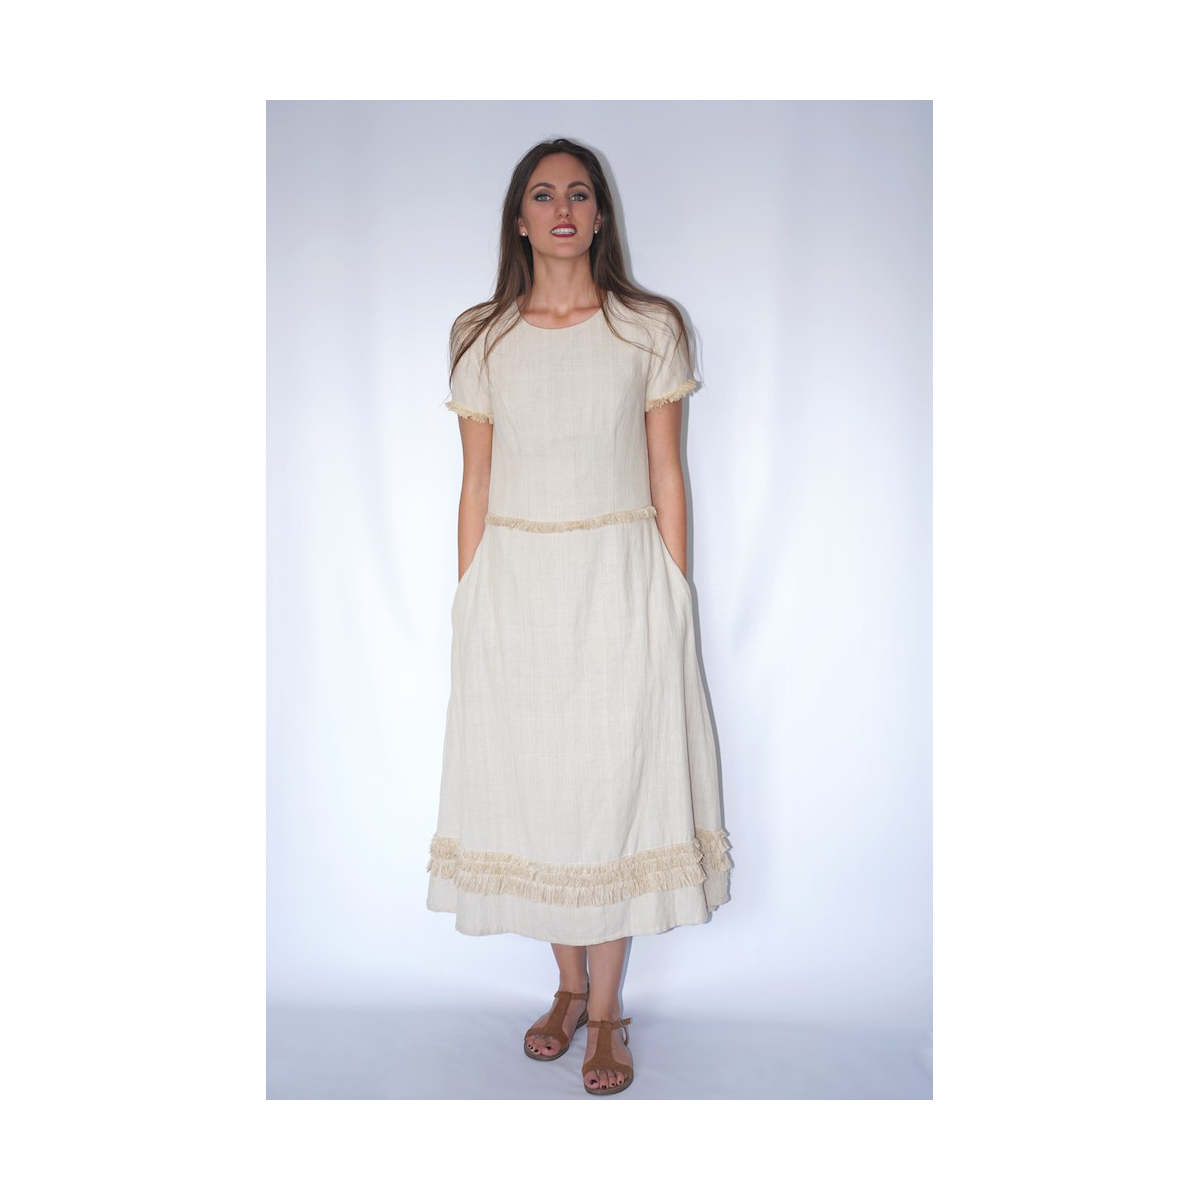 long lotus fiber and cotton dress in natural beige with fringes, front